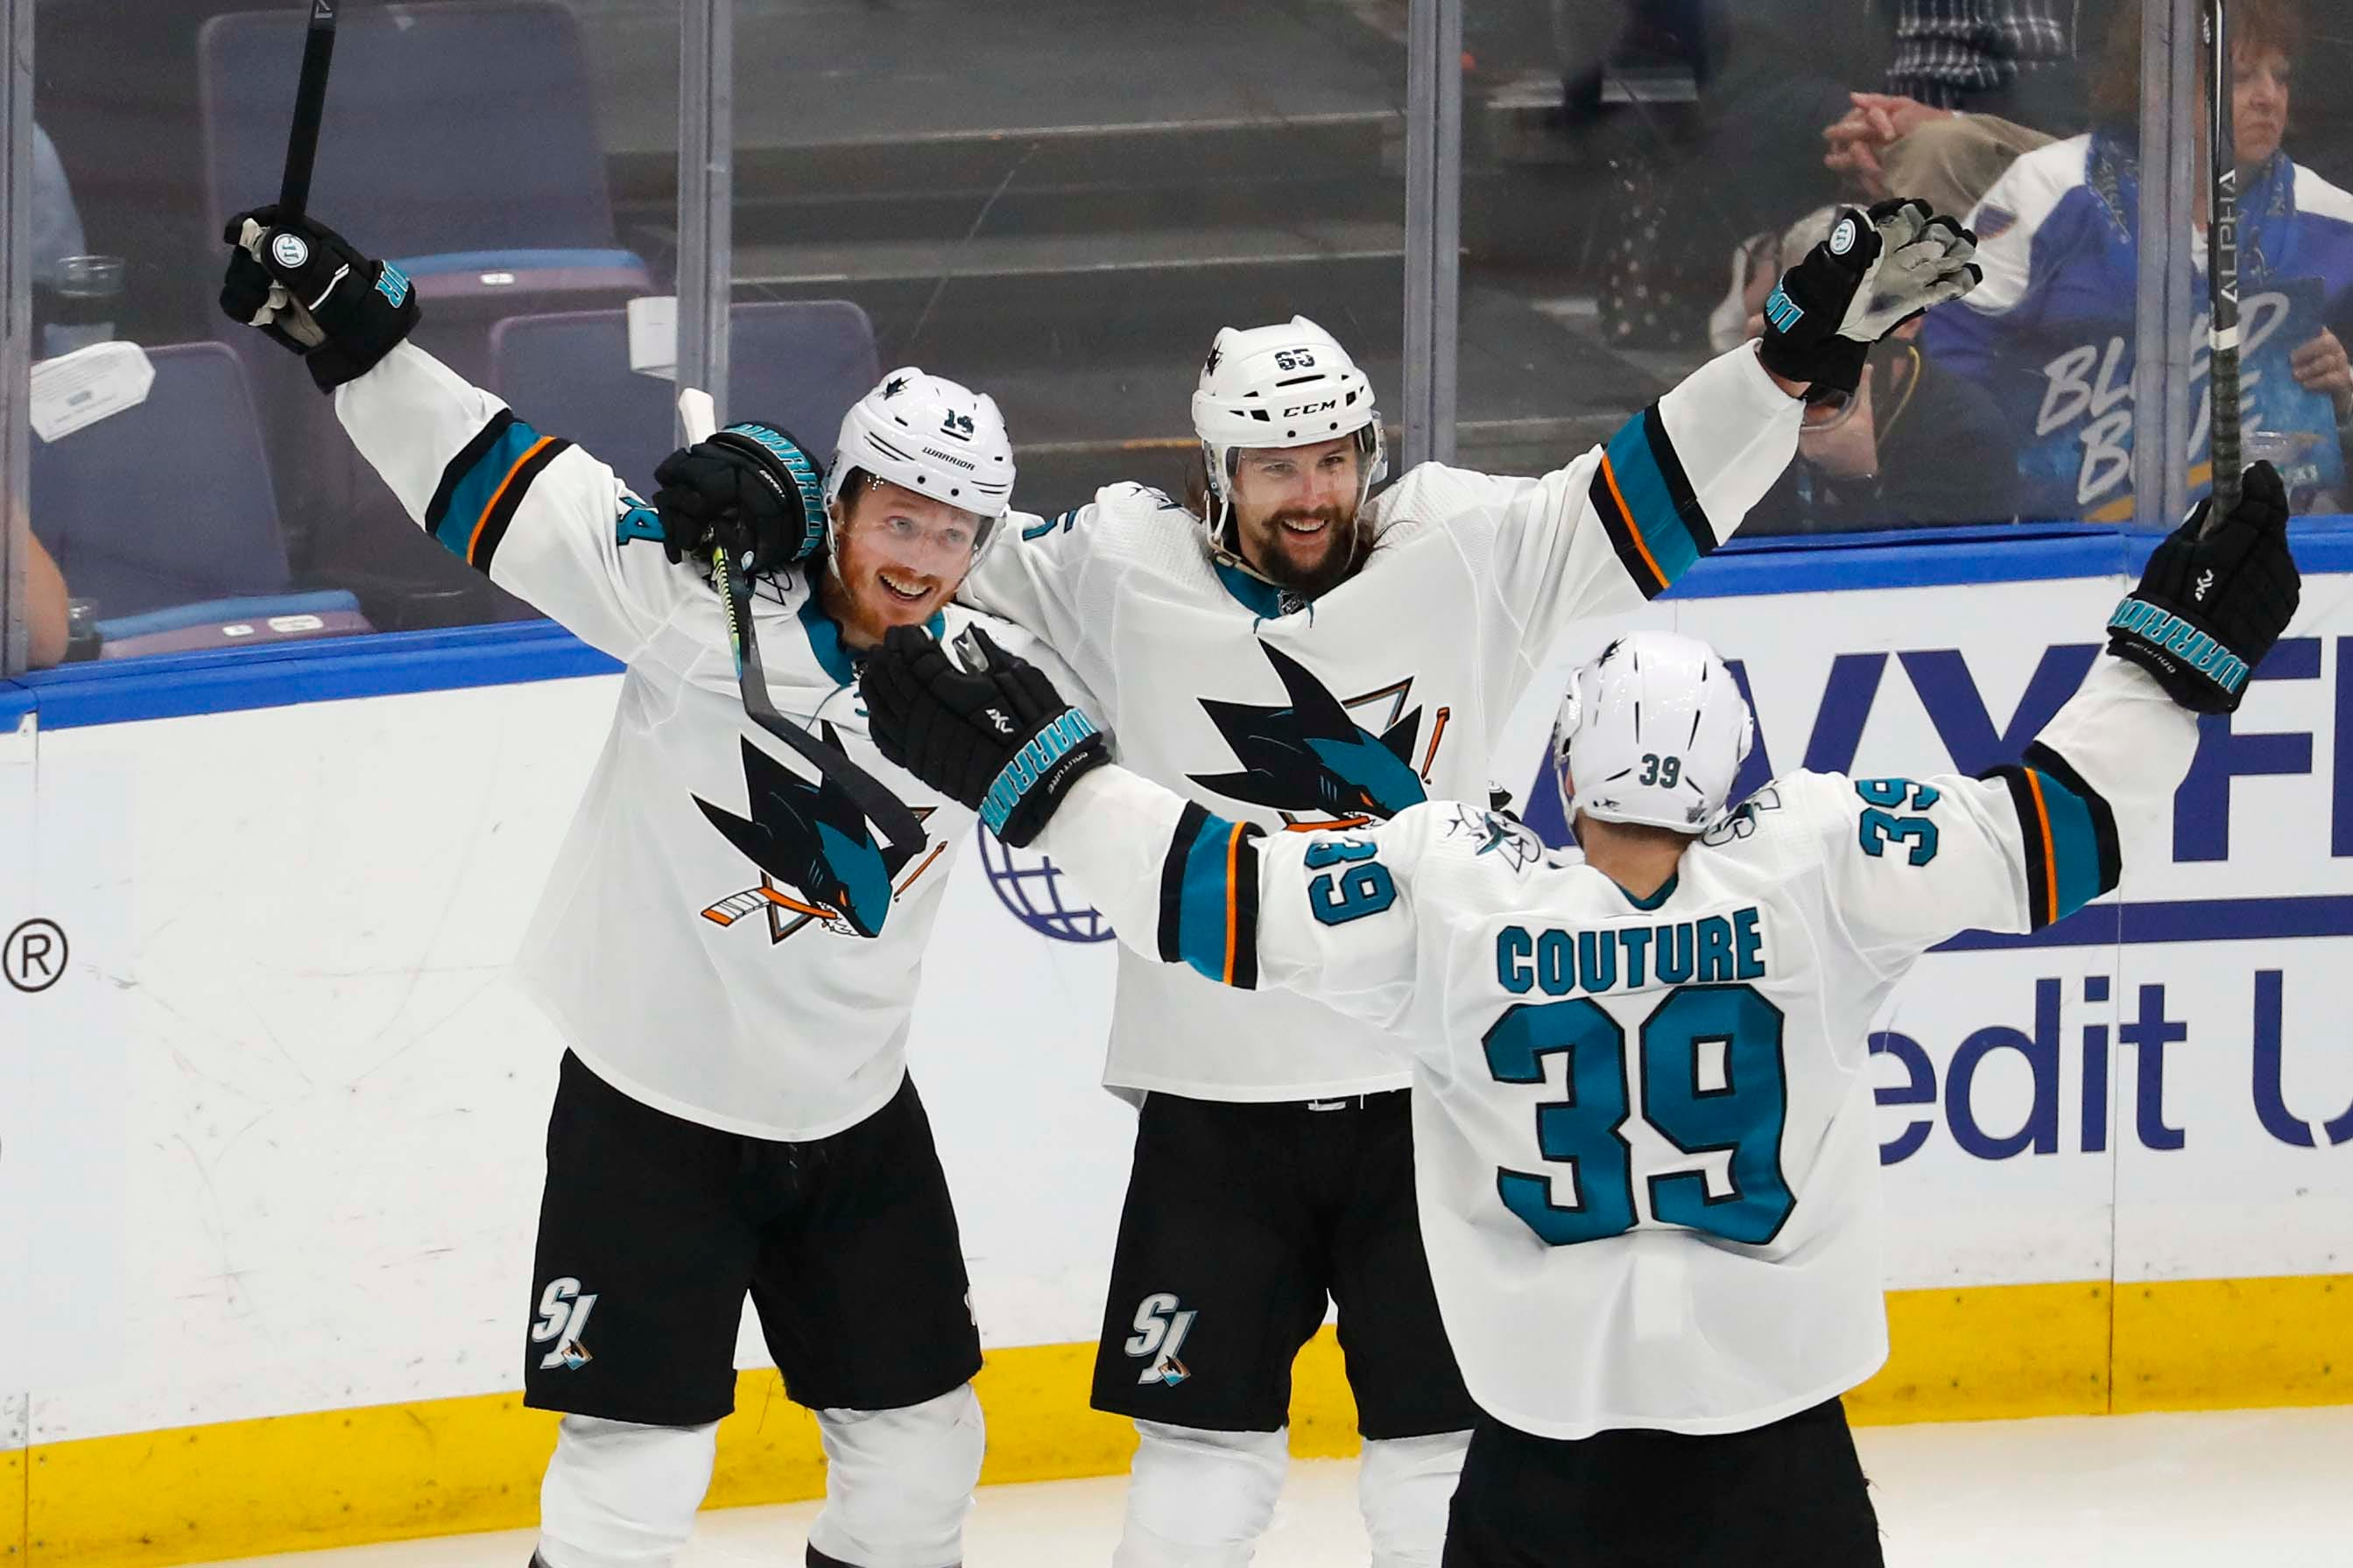 FanDuel returns bets on Sharks vs. Blues Game 3 due 'controversial nature' of OT goal